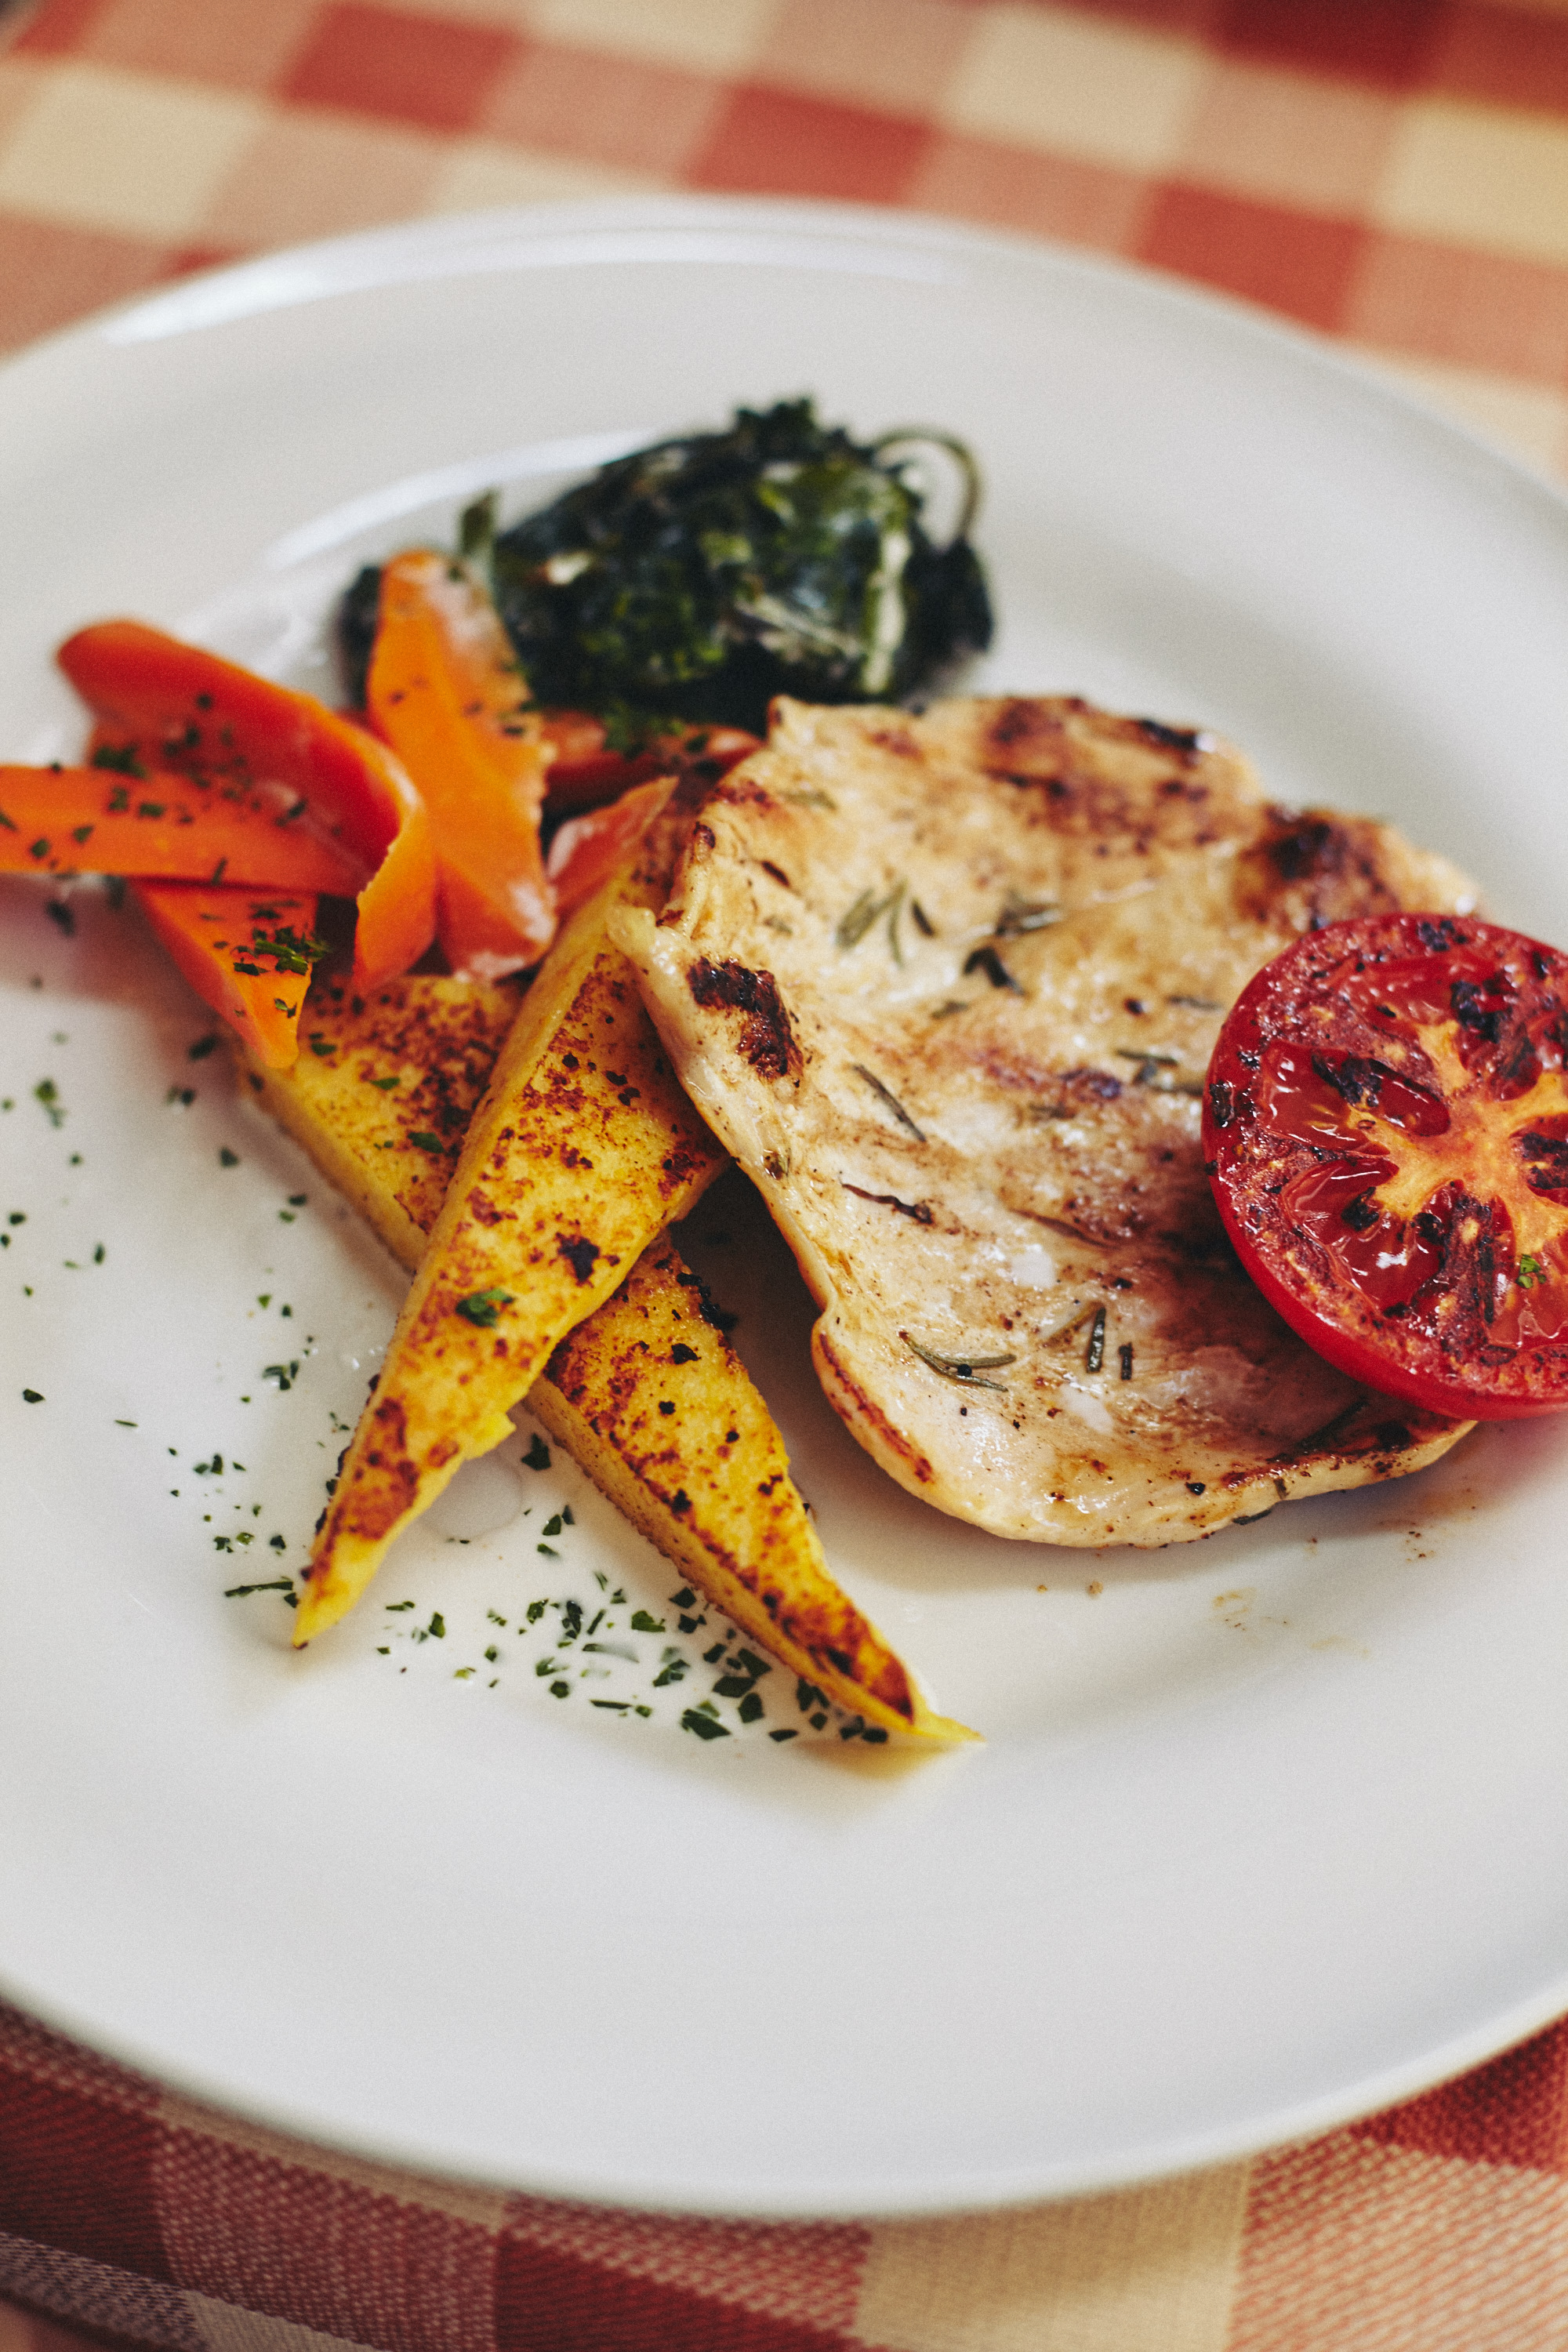 maxmotel_budapest_aug2015_day01_03_lunch_0134